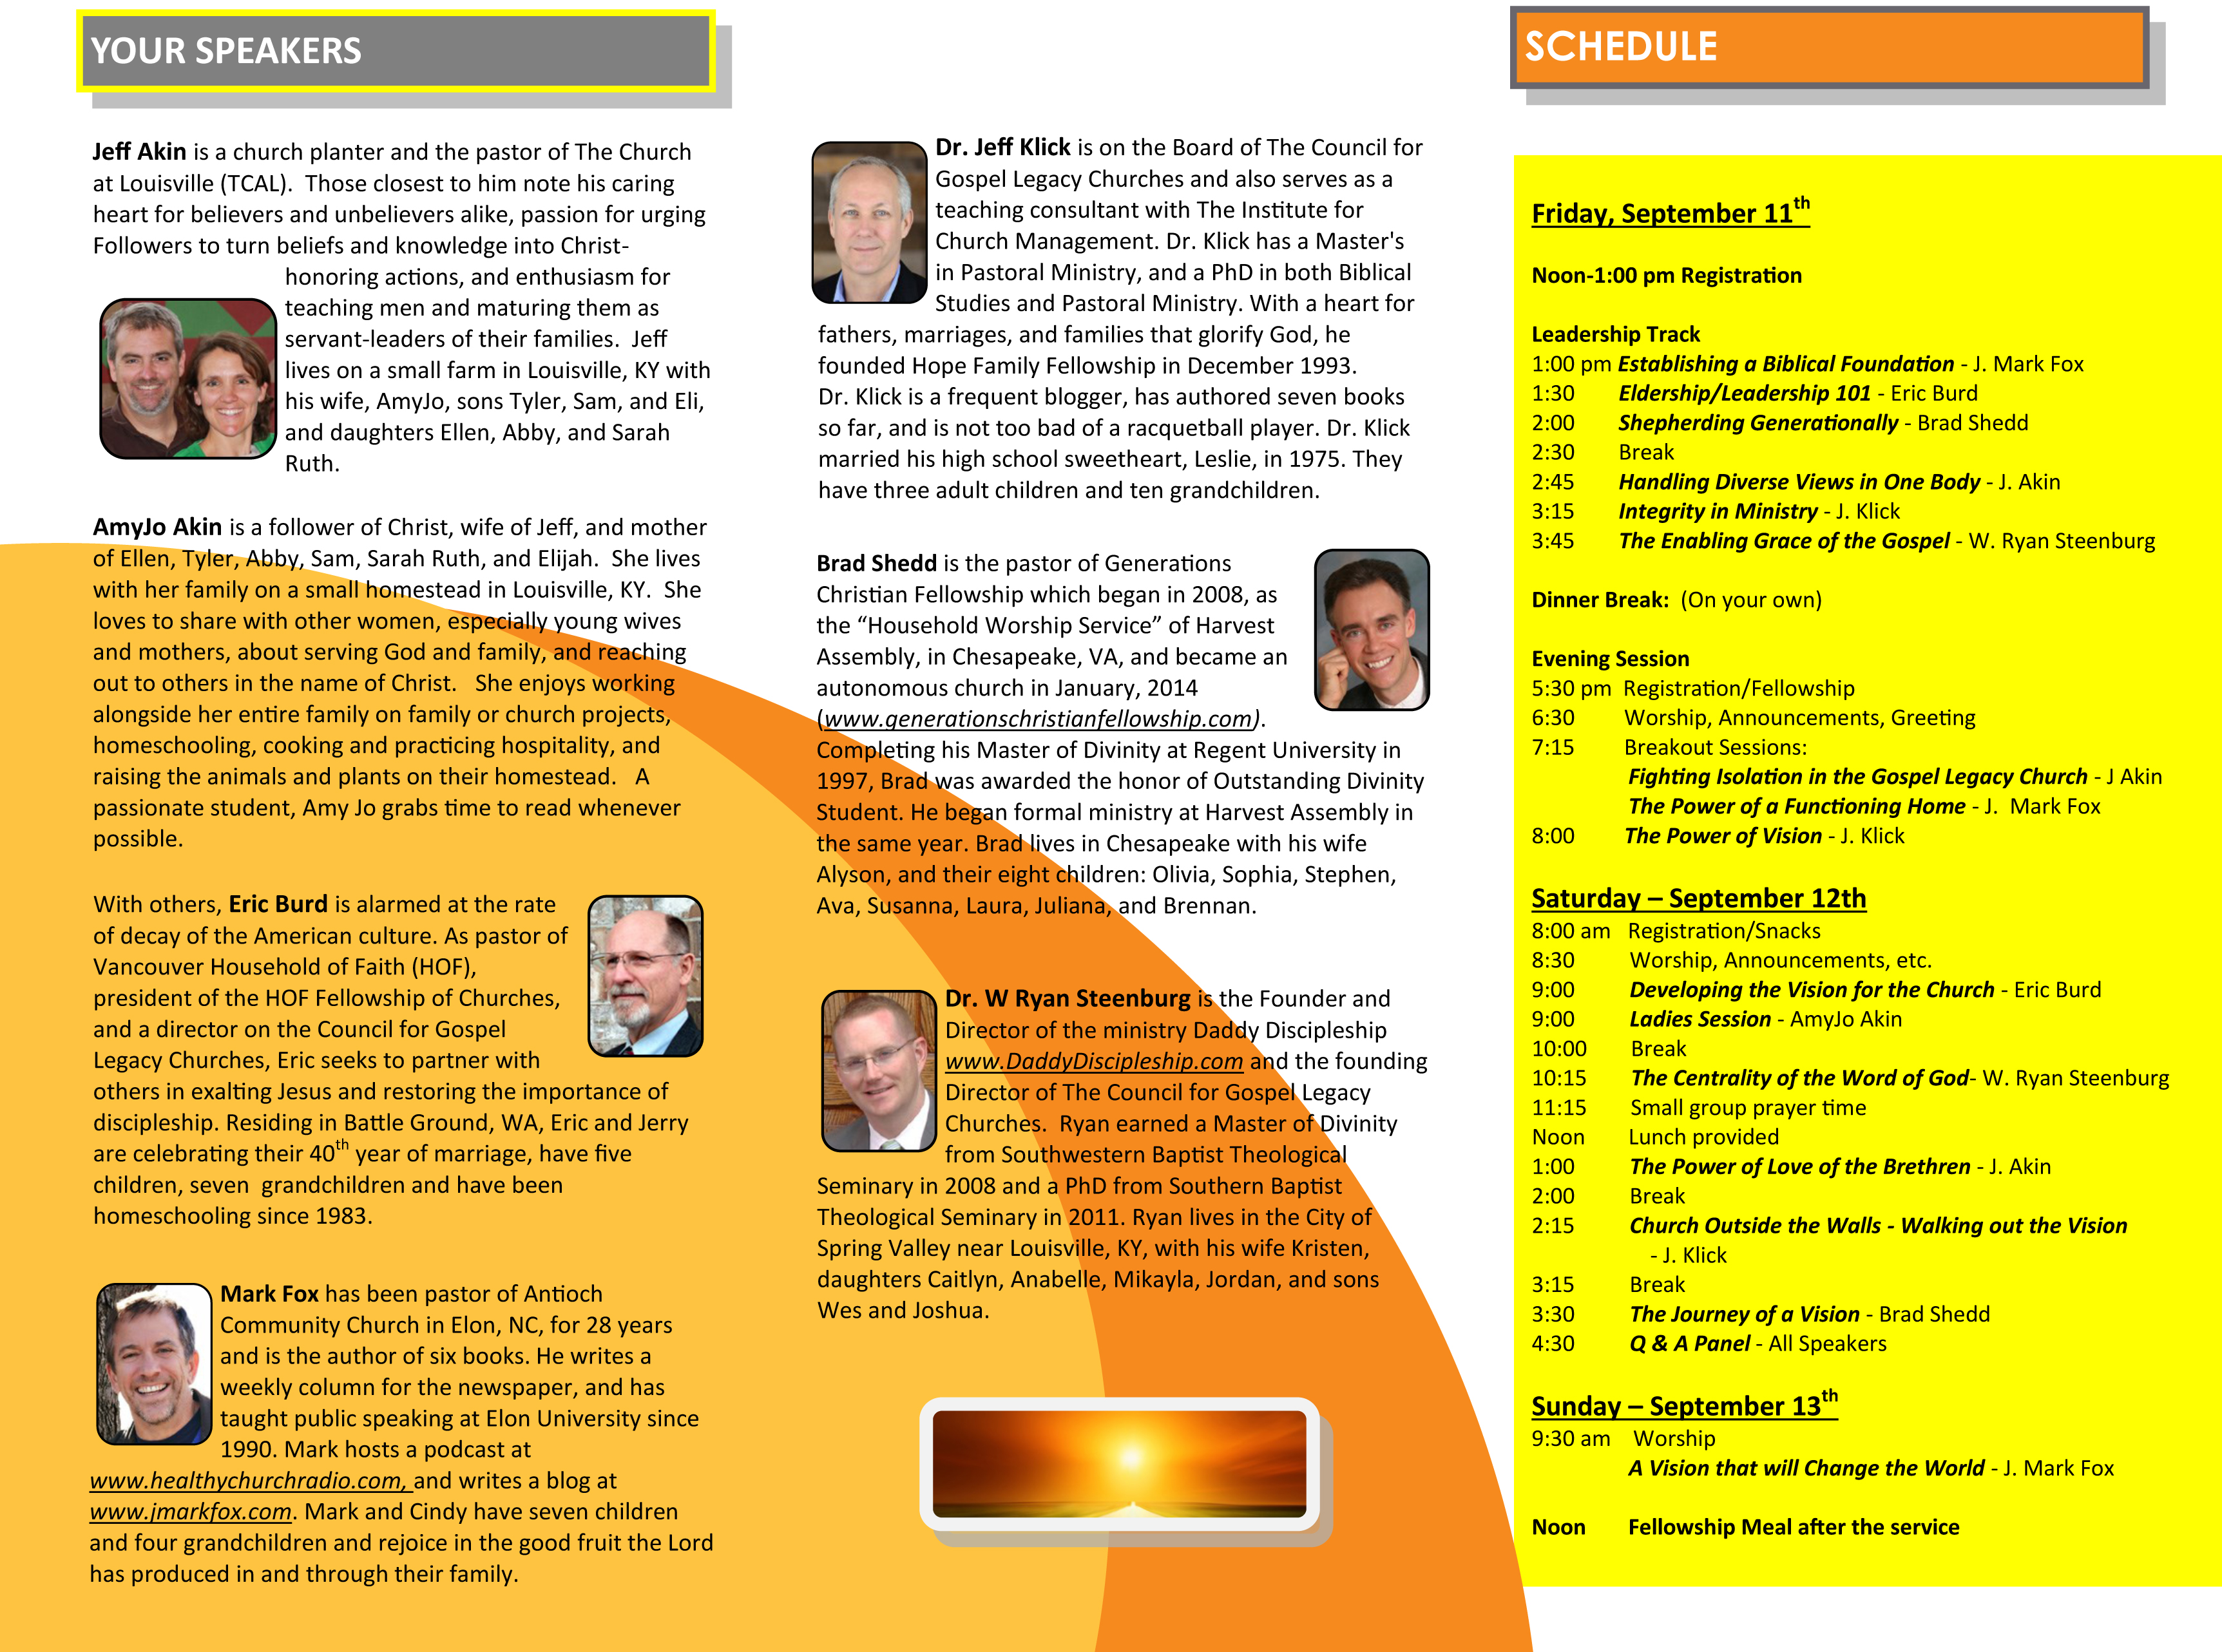 Power of Vision Conference Schedule